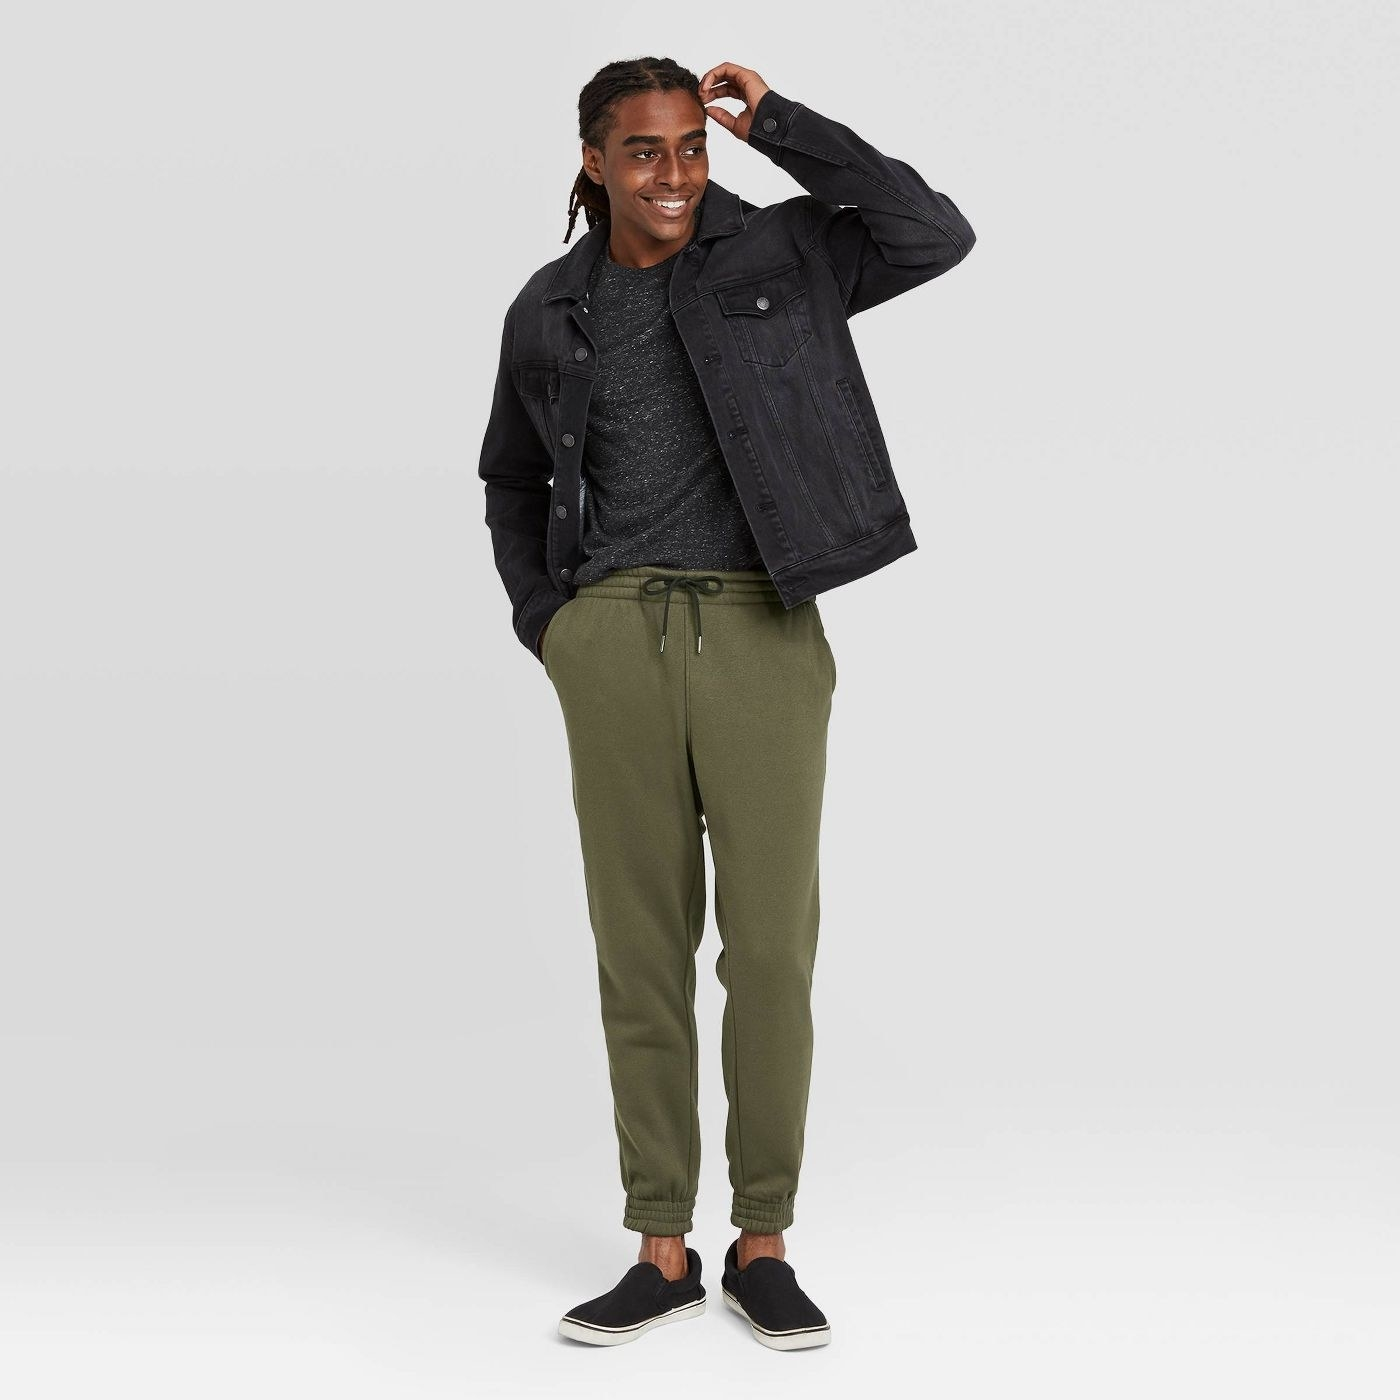 Model wearing the joggers in green